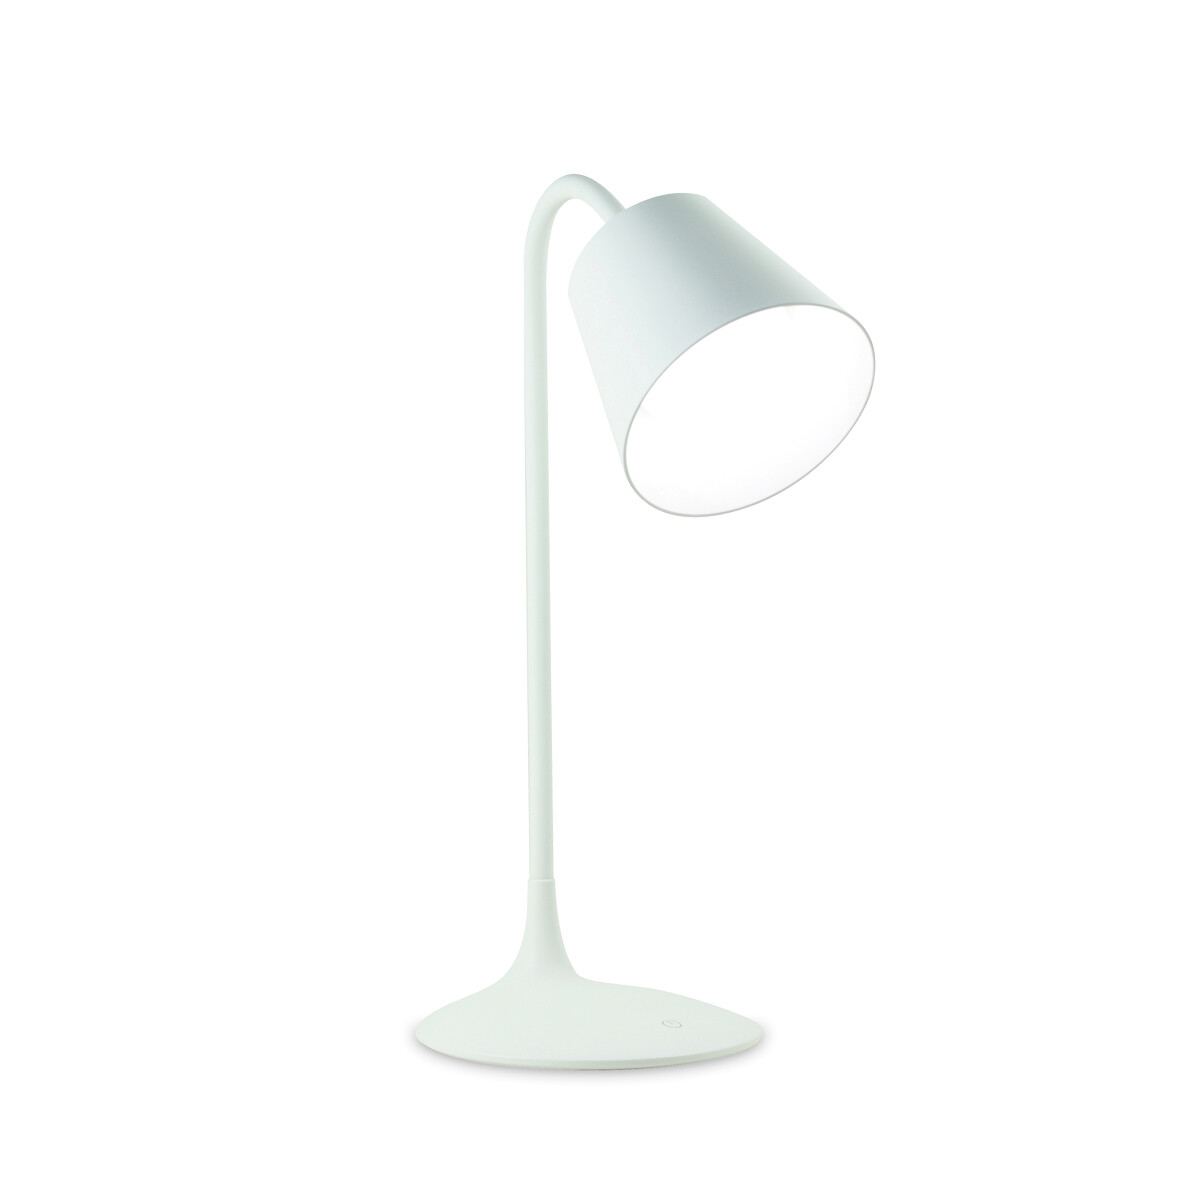 Reading Touch Dimmable / Rechargable / Adjustable Table Lamp 3.2W LED 5000-6500K,120lm,White